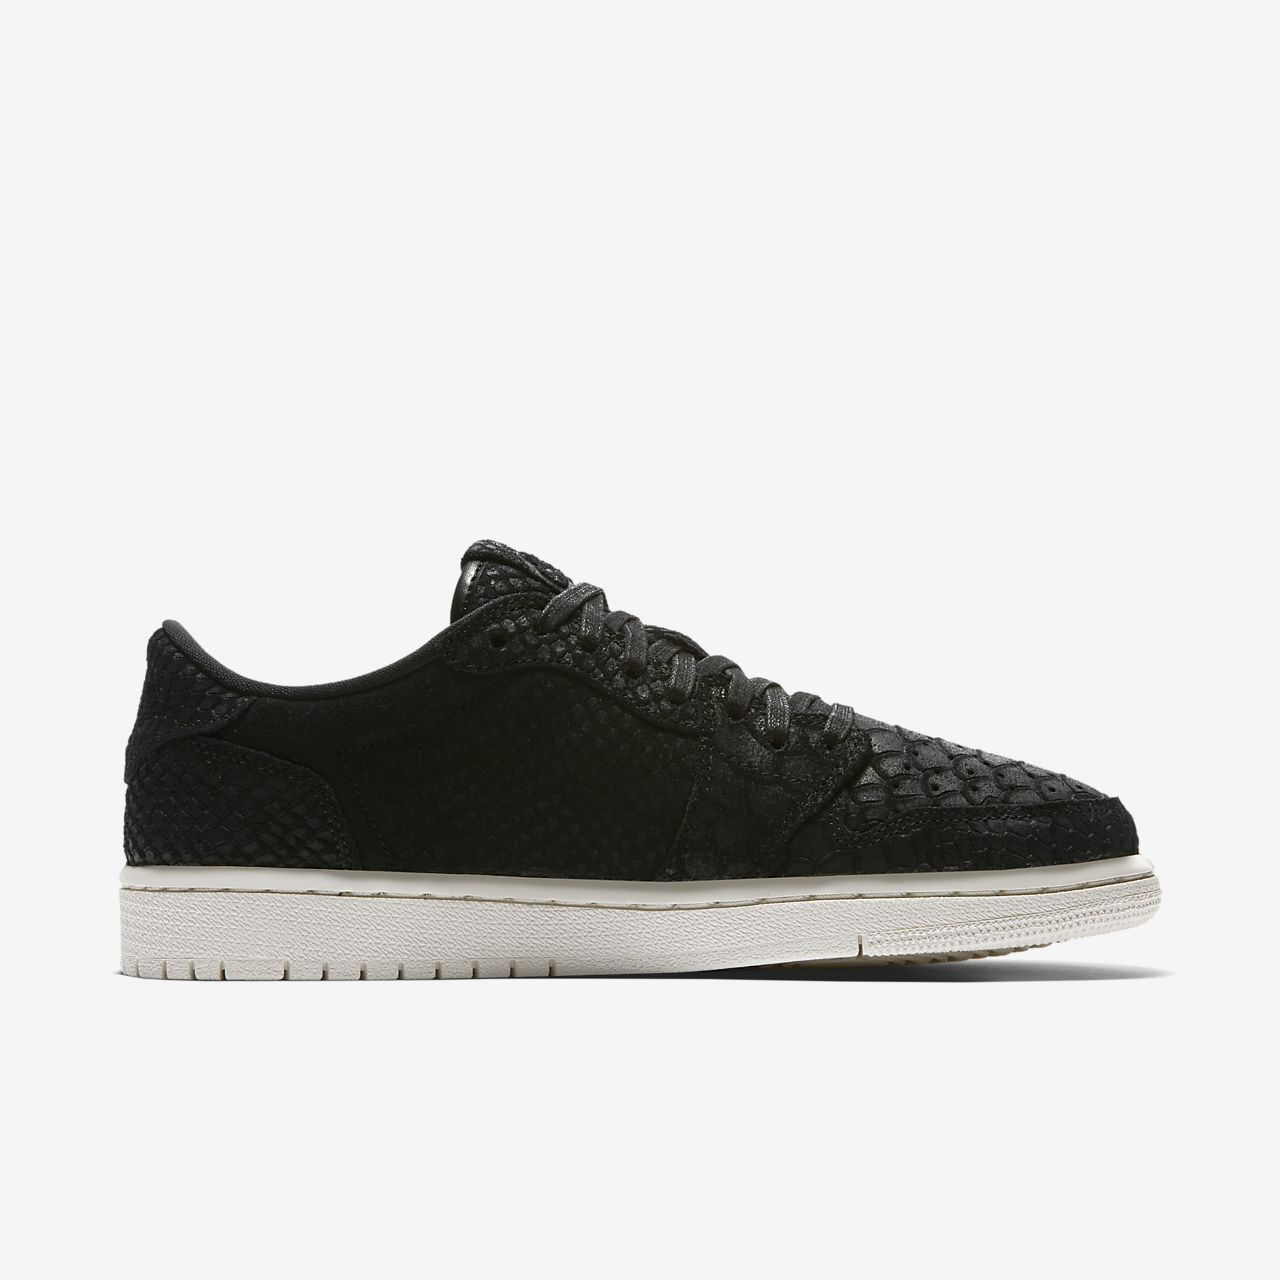 air jordan 1 low white nz